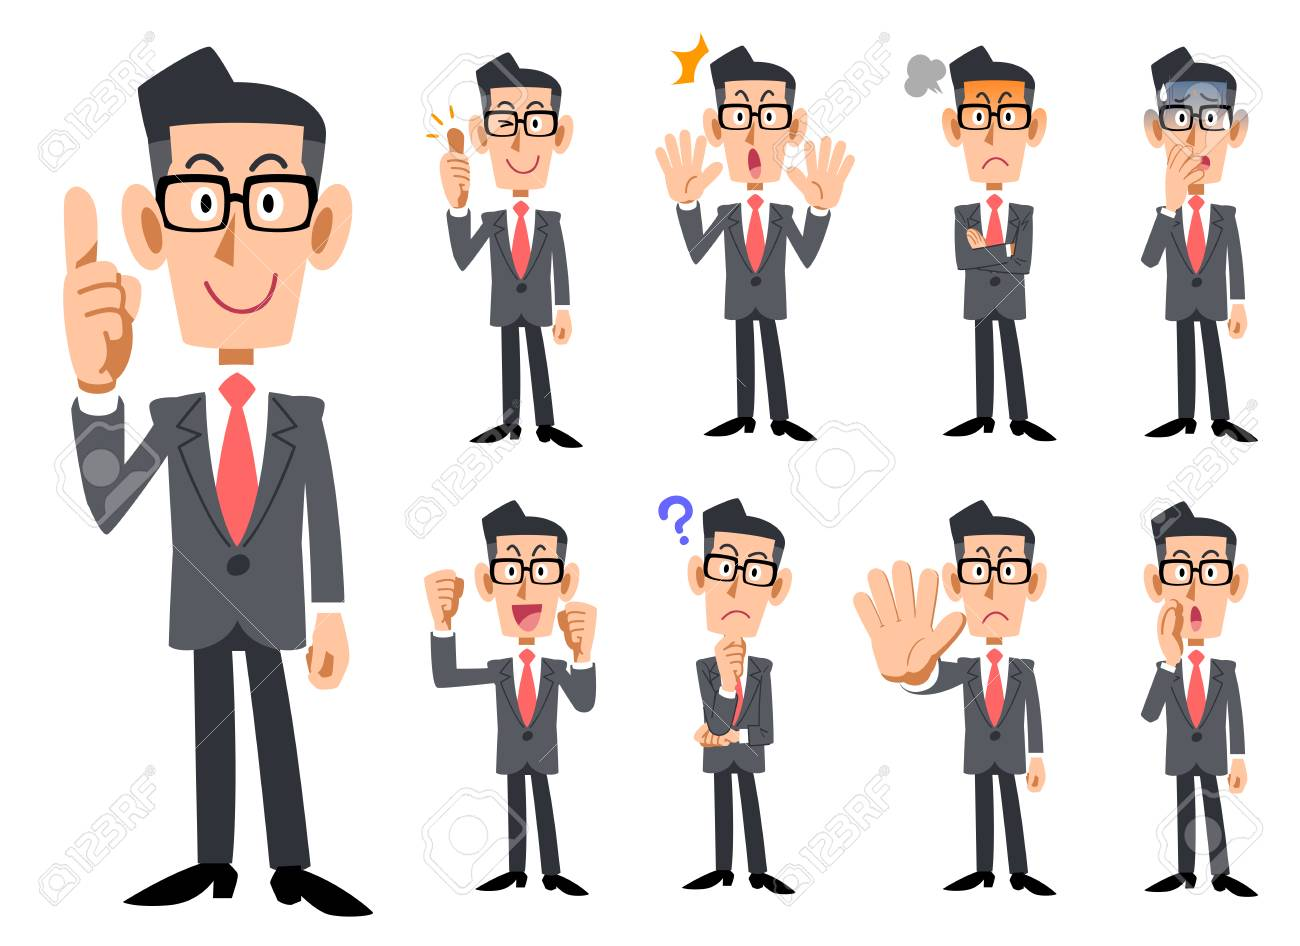 Red Necktie and gray suits wearing eyeglasses businessman's gestures and expression - 104603287